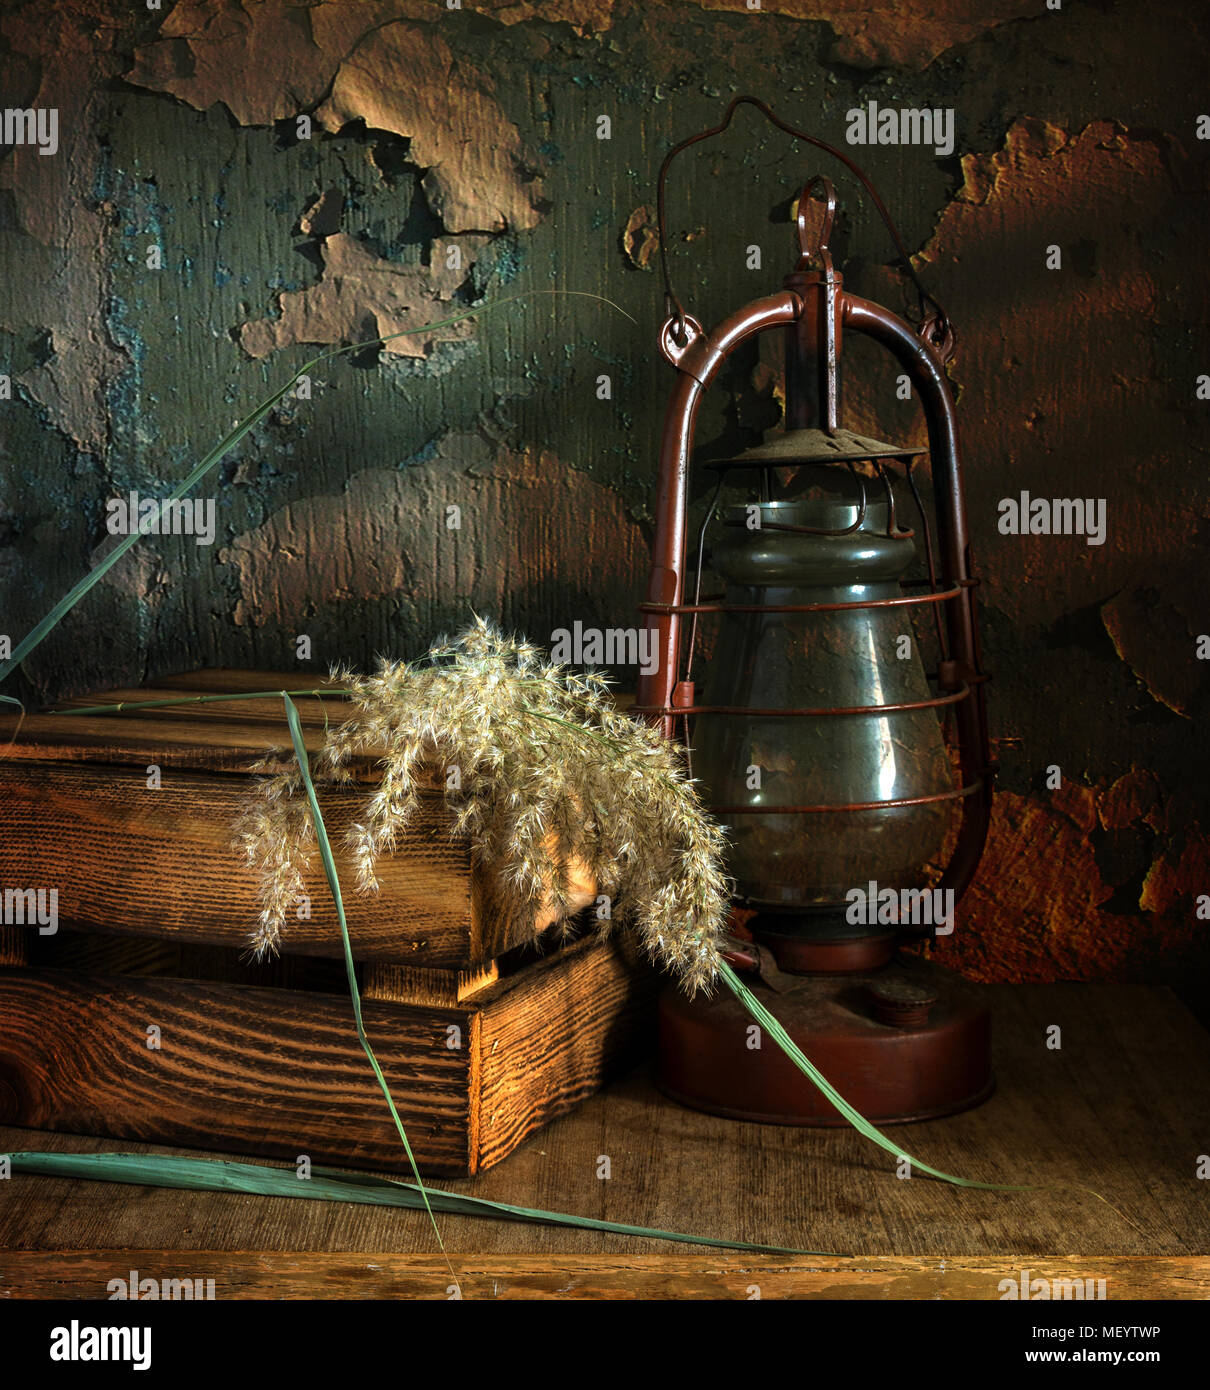 Vintage still life with a box and a kerosene lamp. - Stock Image